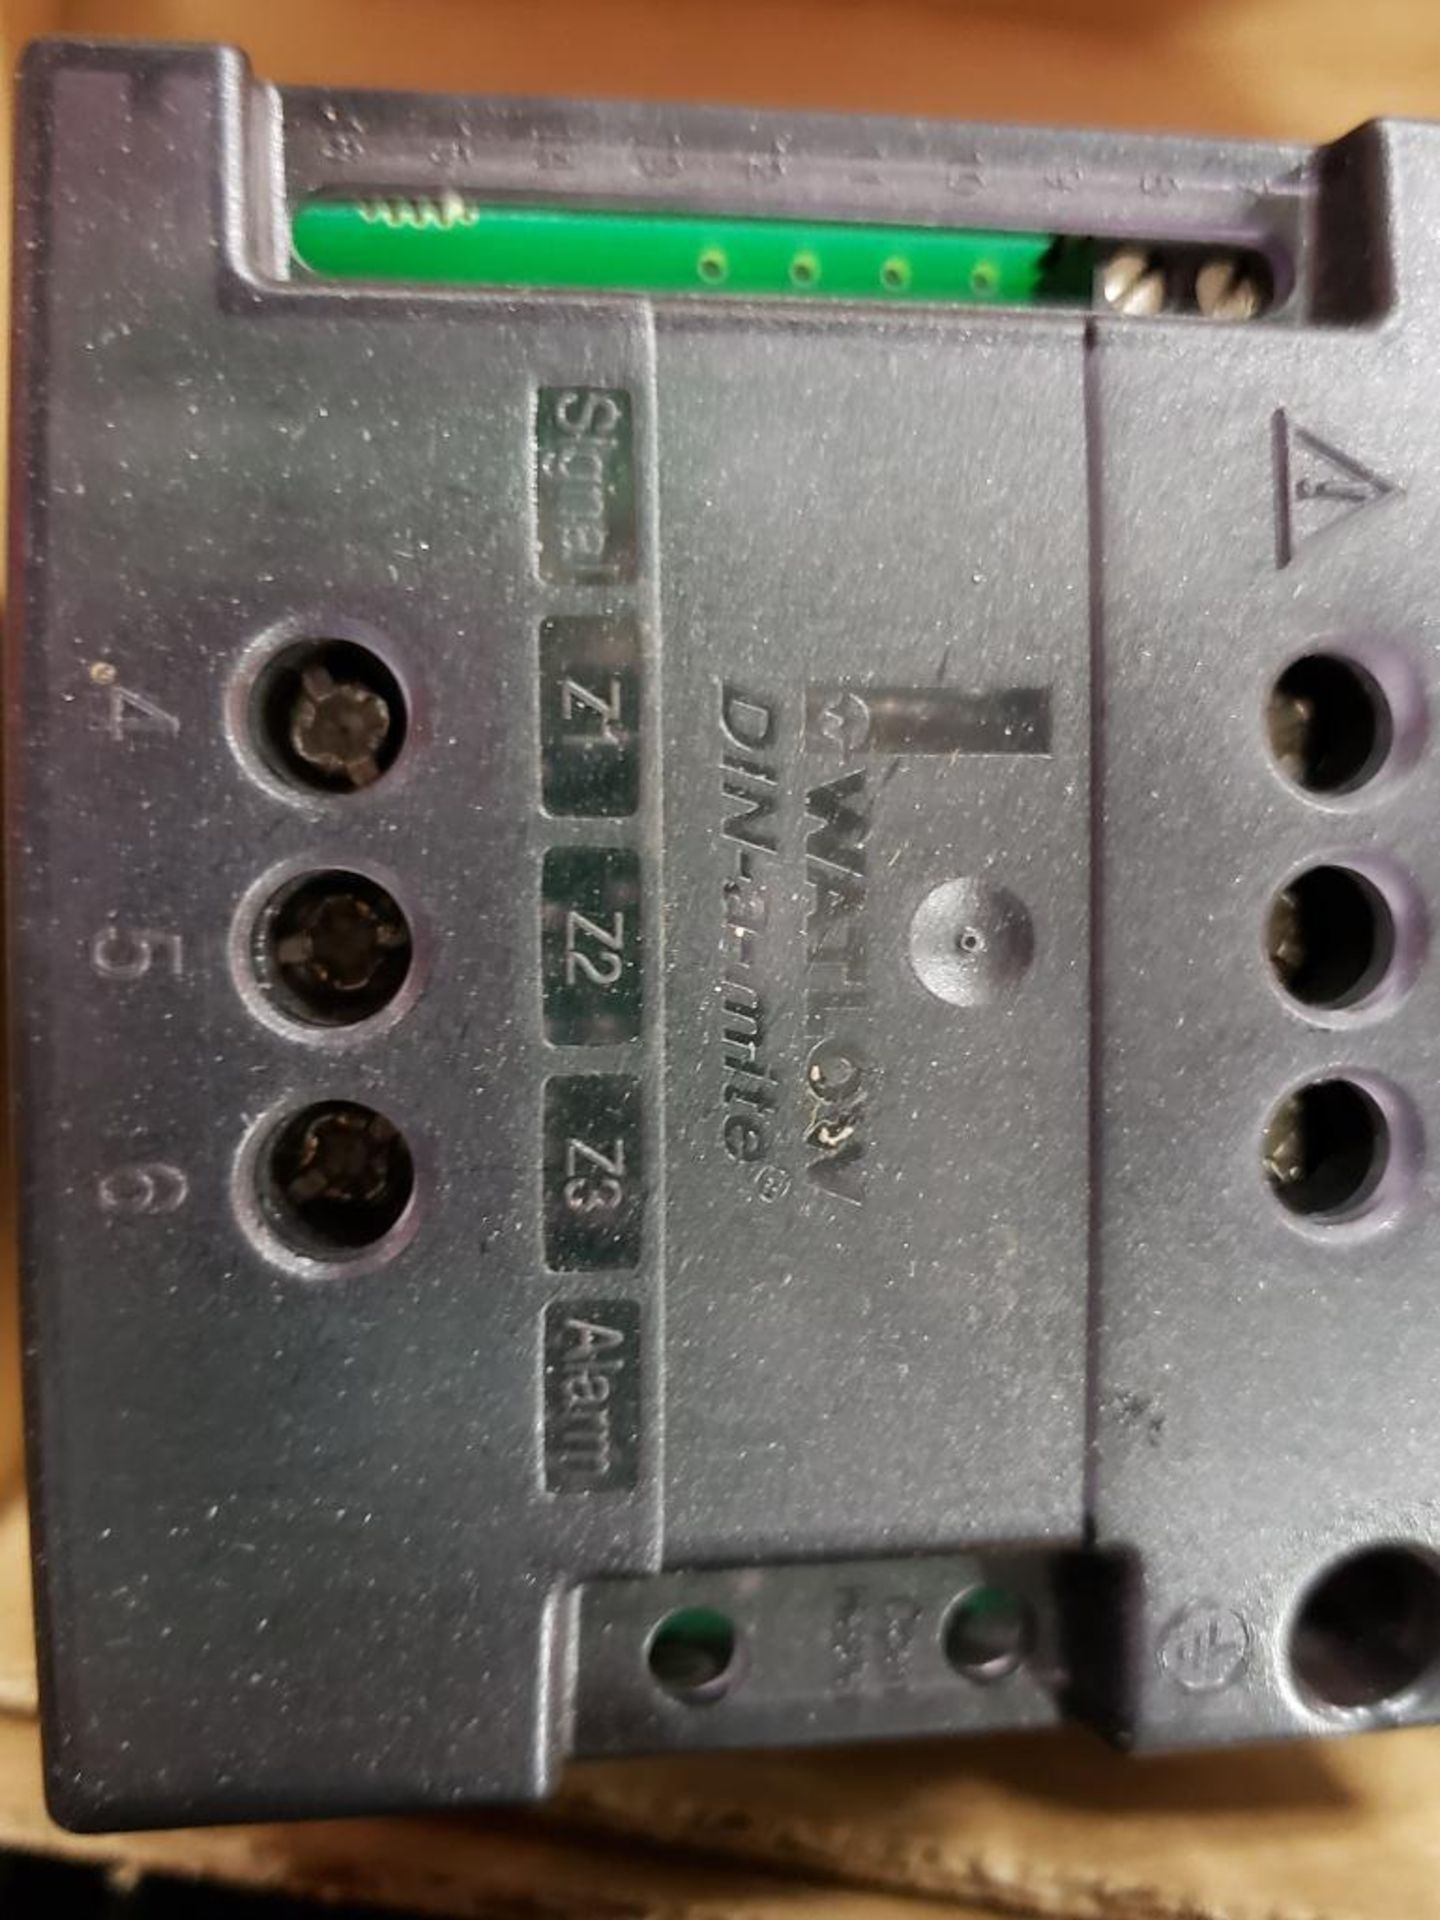 Qty 2 - Watlow DIN-A-Mite DB10-24C0-0000 power controller. - Image 2 of 5